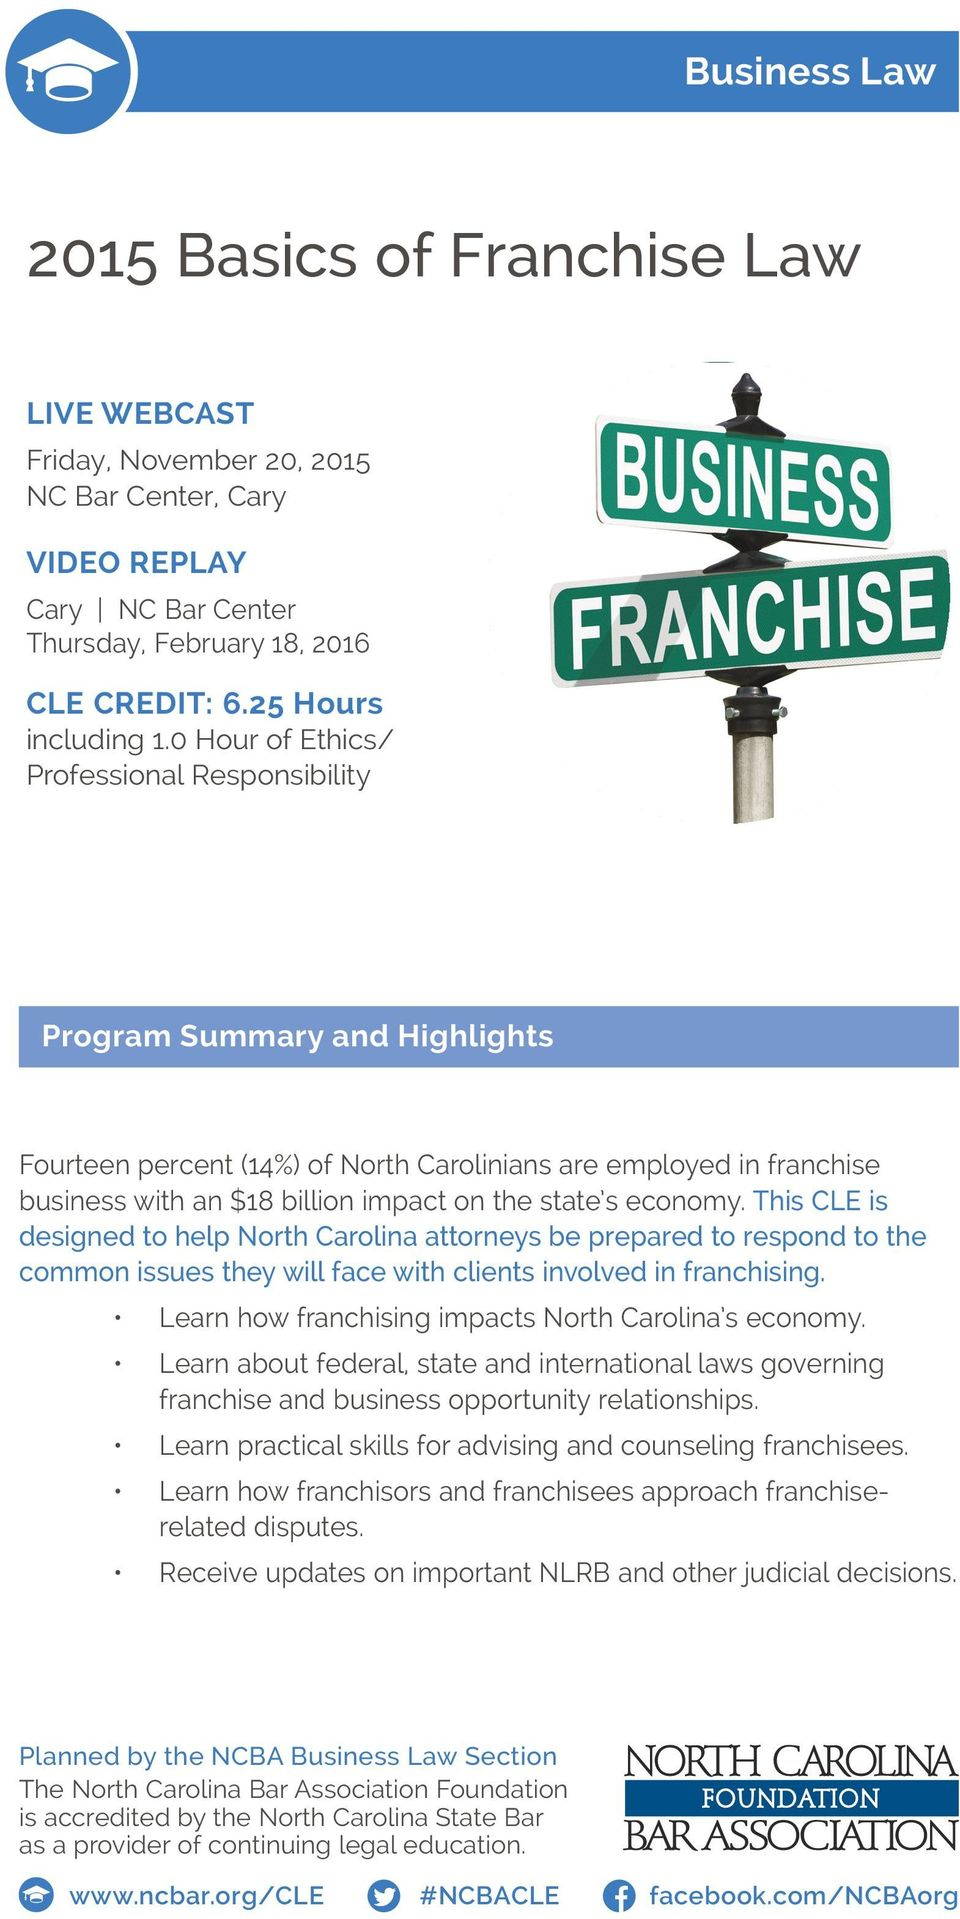 economy. This CLE is designed to help North Carolina attorneys be prepared to respond to the common issues they will face with clients involved in franchising.